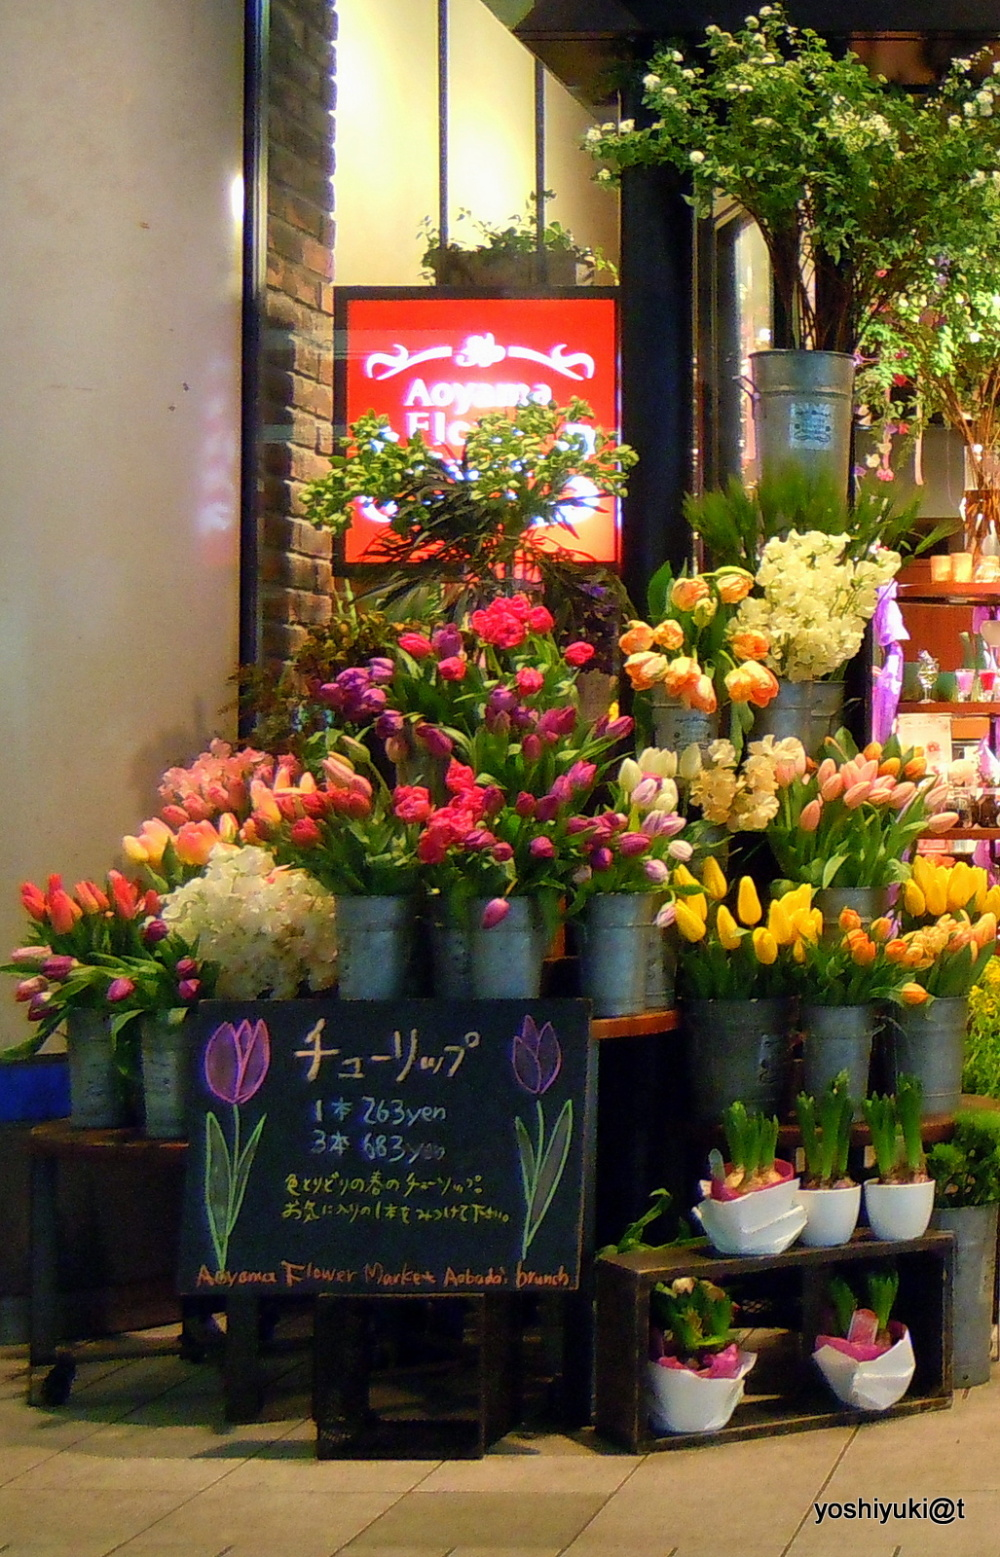 All about tulips at the florist's